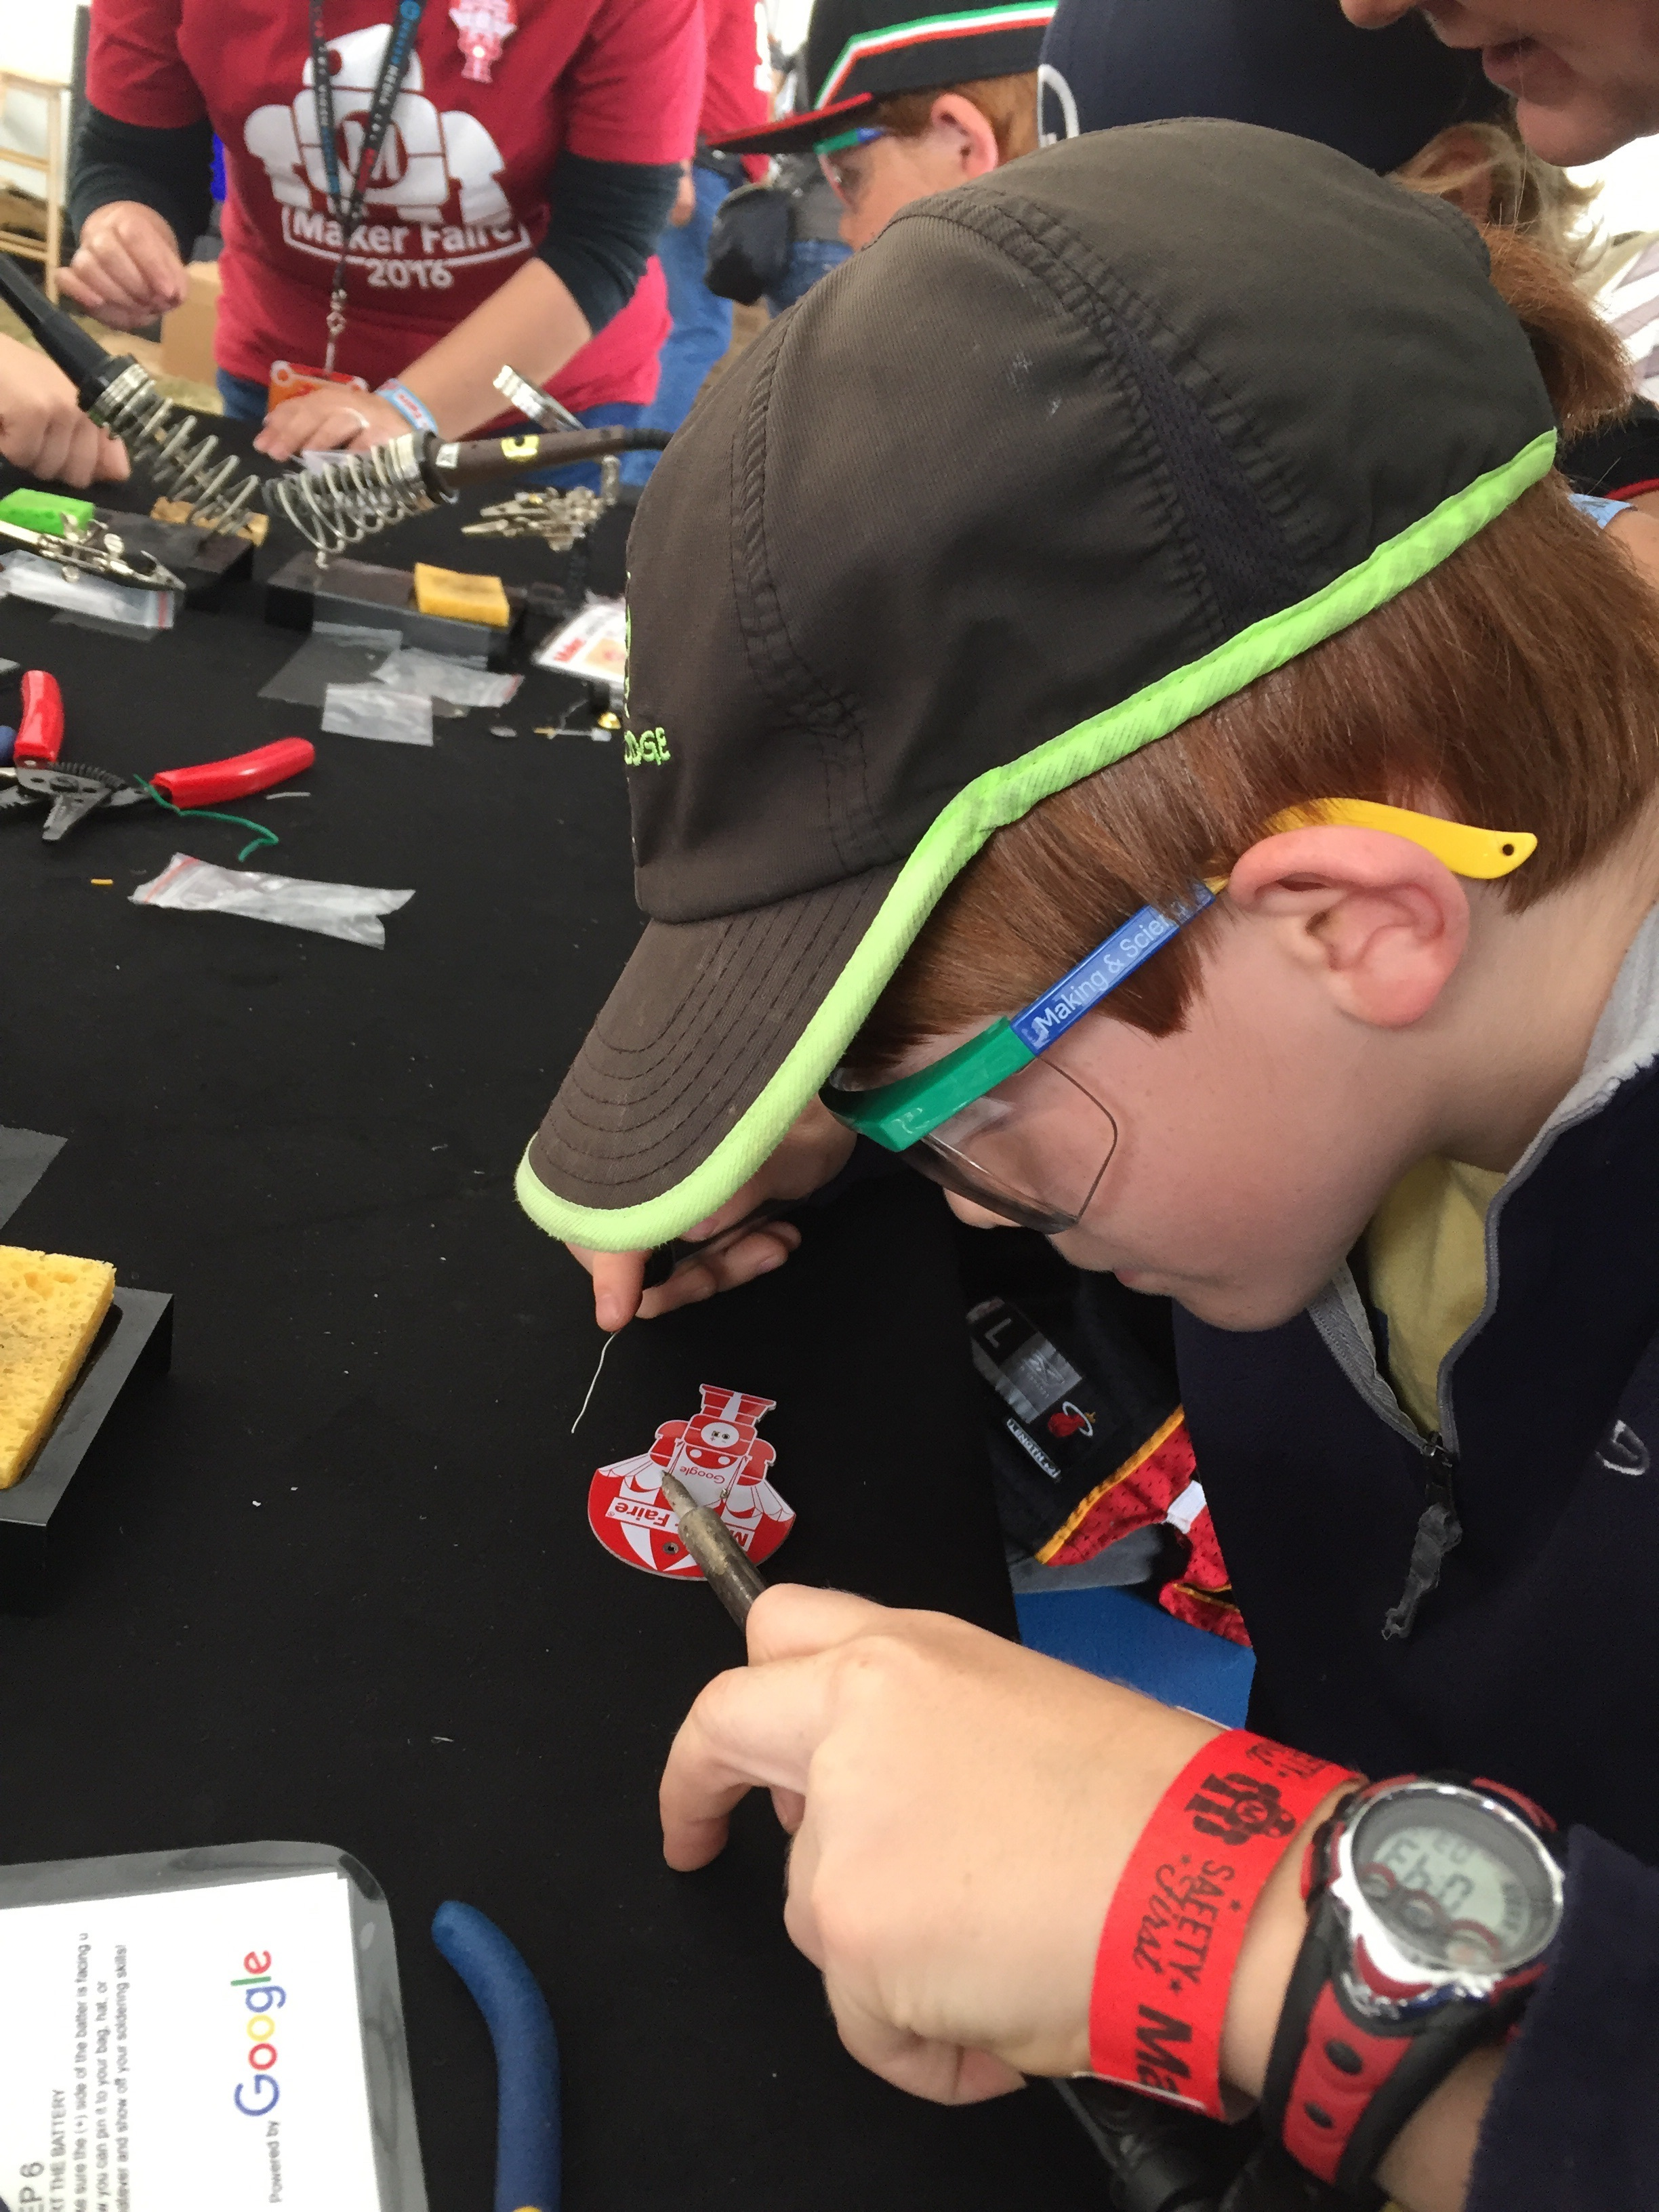 Learning to solder at MakerFaire